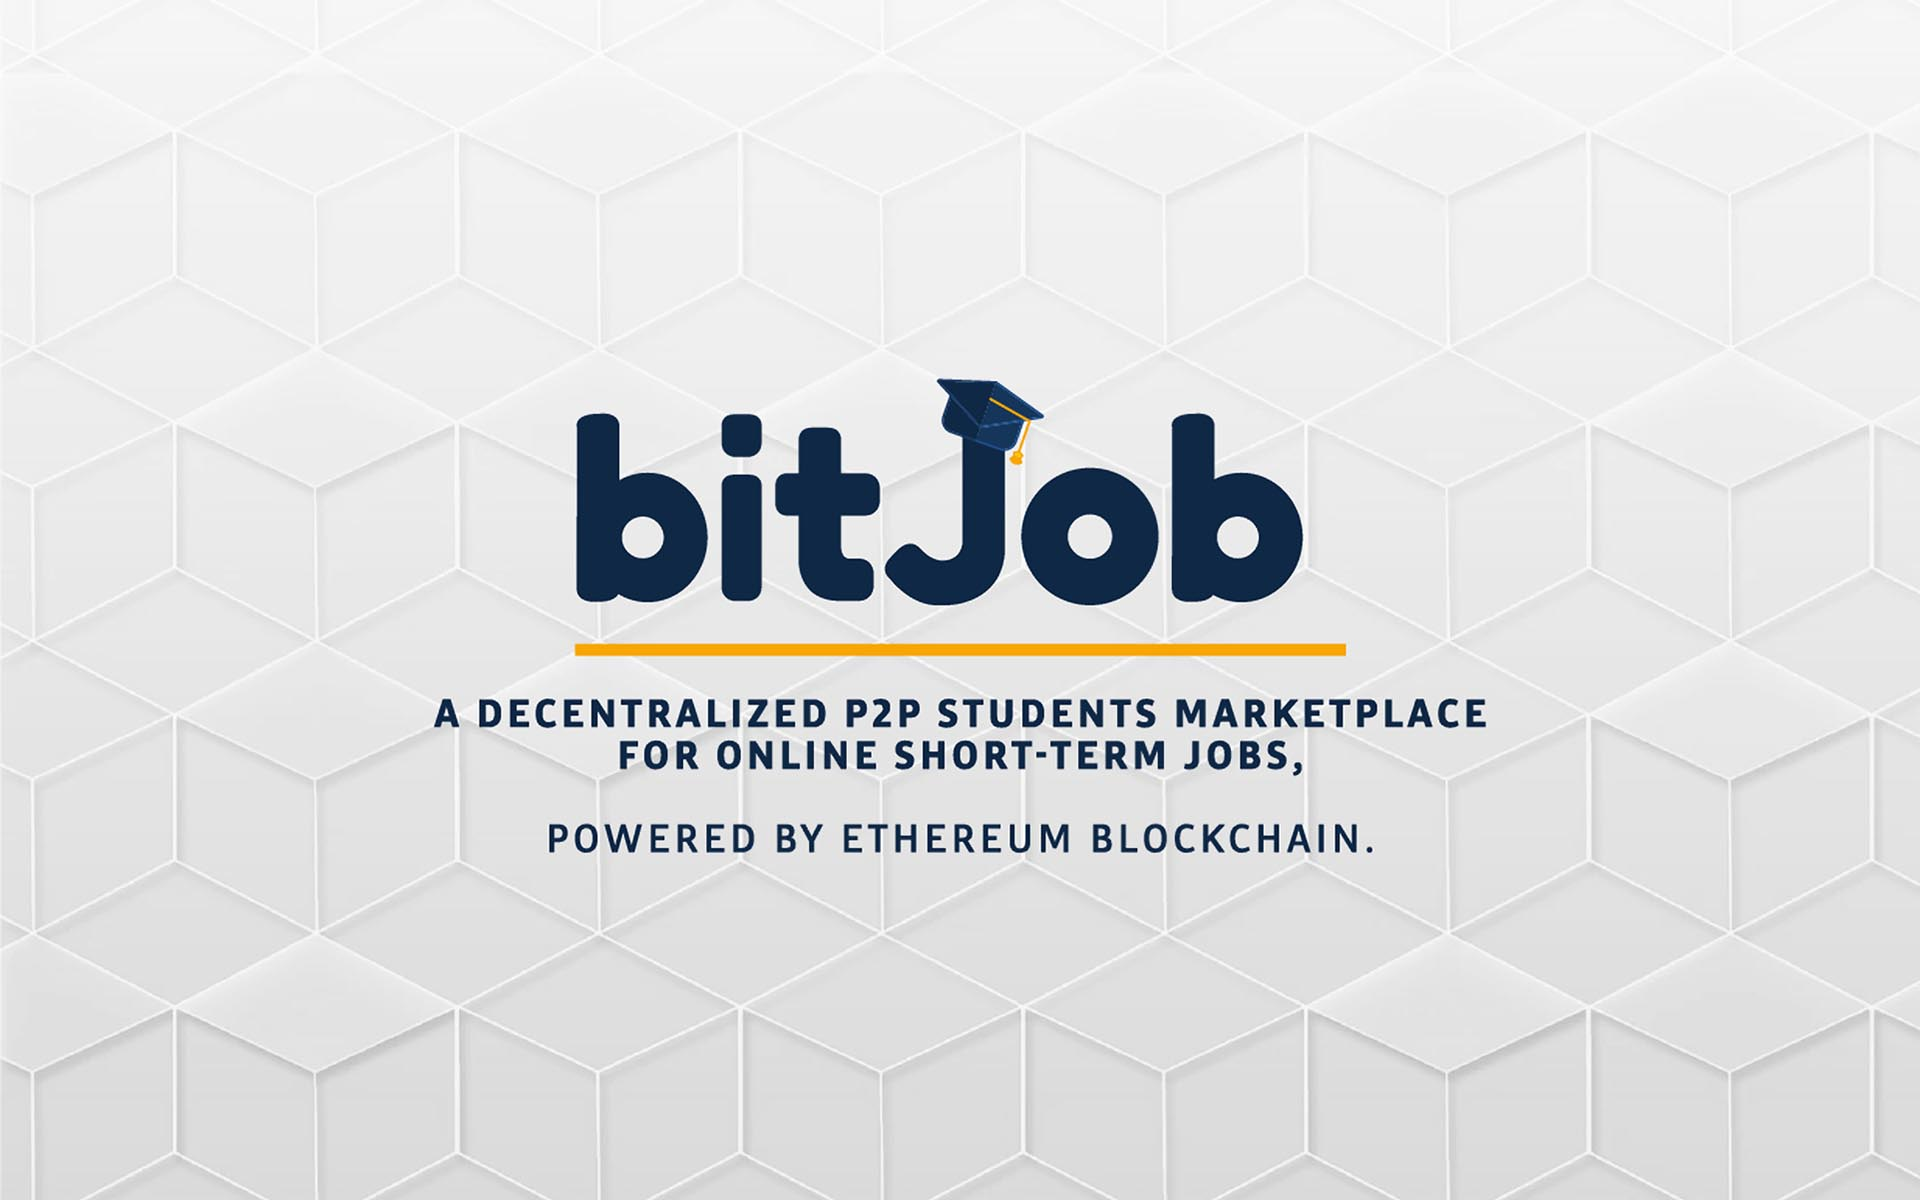 Student Job Market Startup bitJob Connects with UK ATM Company